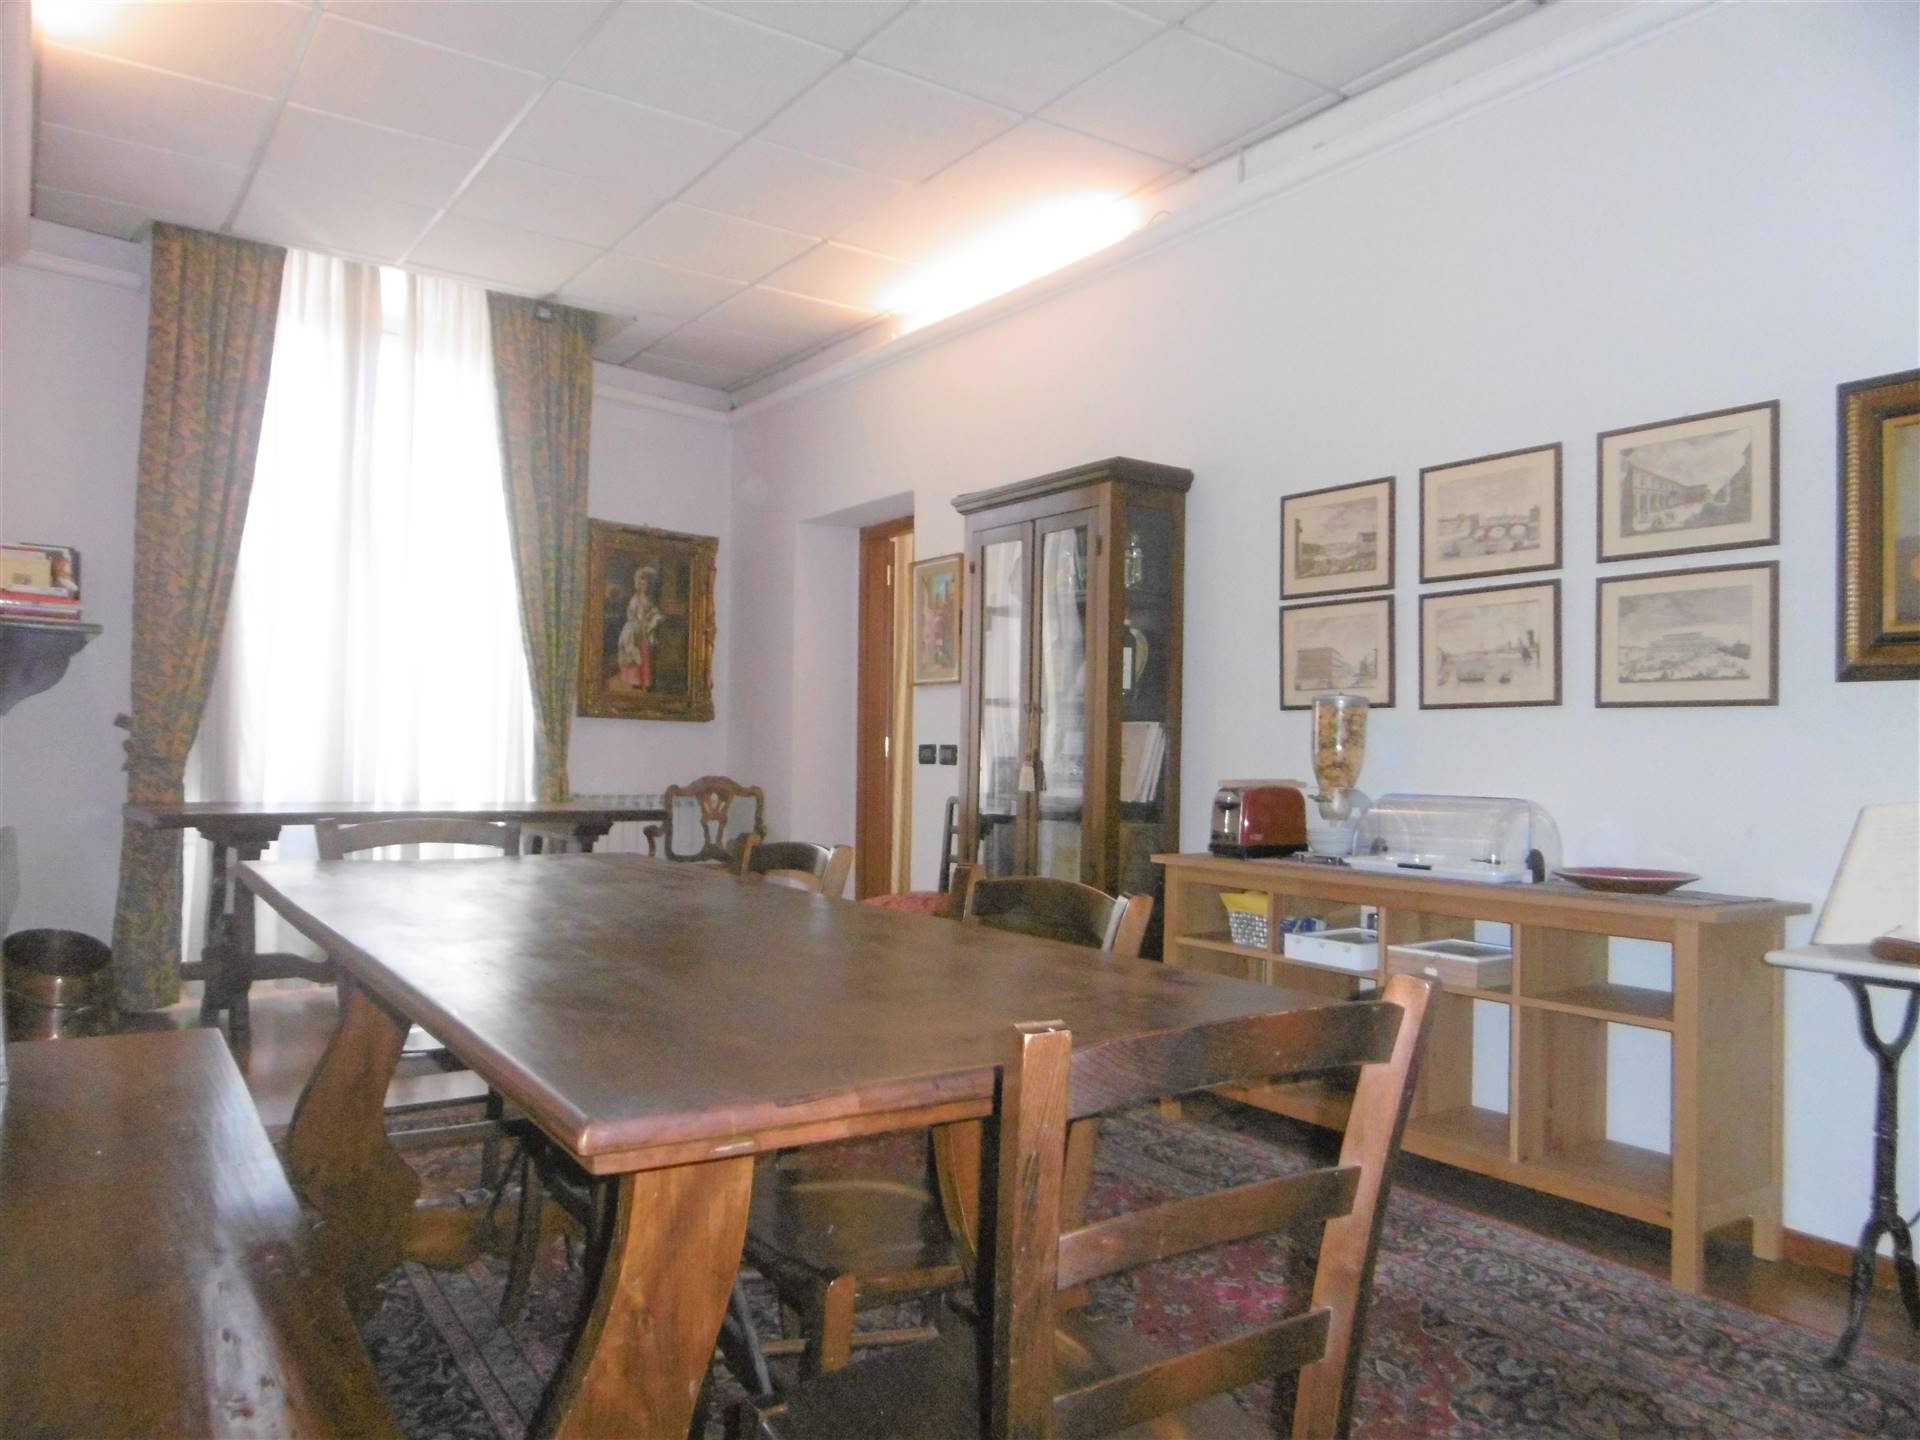 LIBERTÀ, FIRENZE, Apartment for sale of 239 Sq. mt., Restored, Heating Centralized, placed at 2° on 5, composed by: 10 Rooms, Separate kitchen, , 7